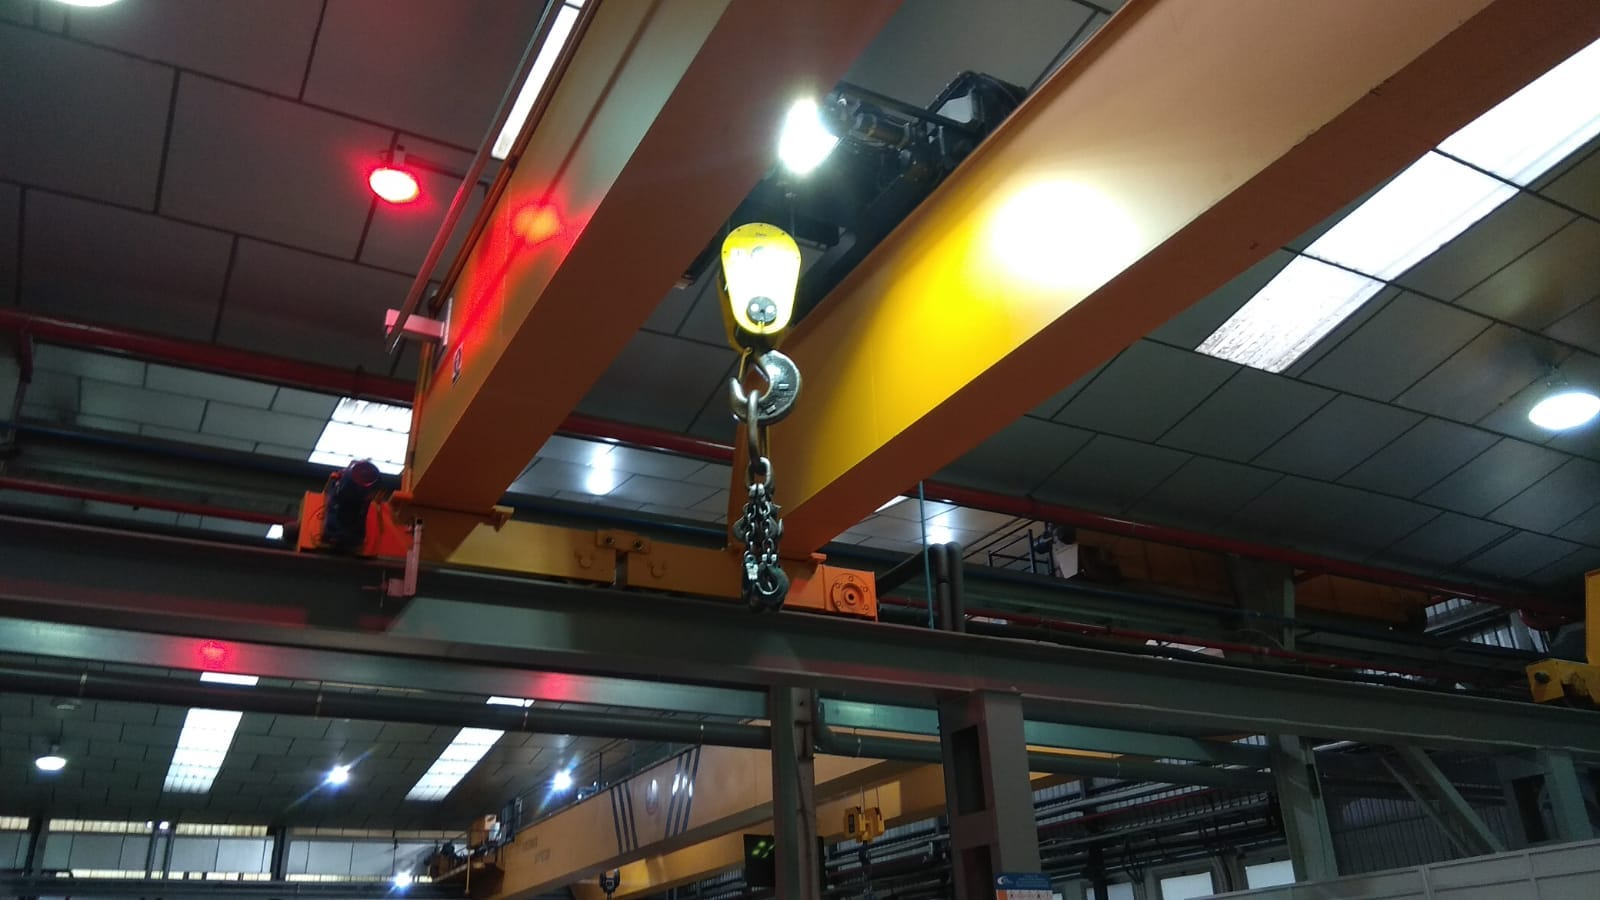 GLOBAL SRG Project: SCL System Security Lights